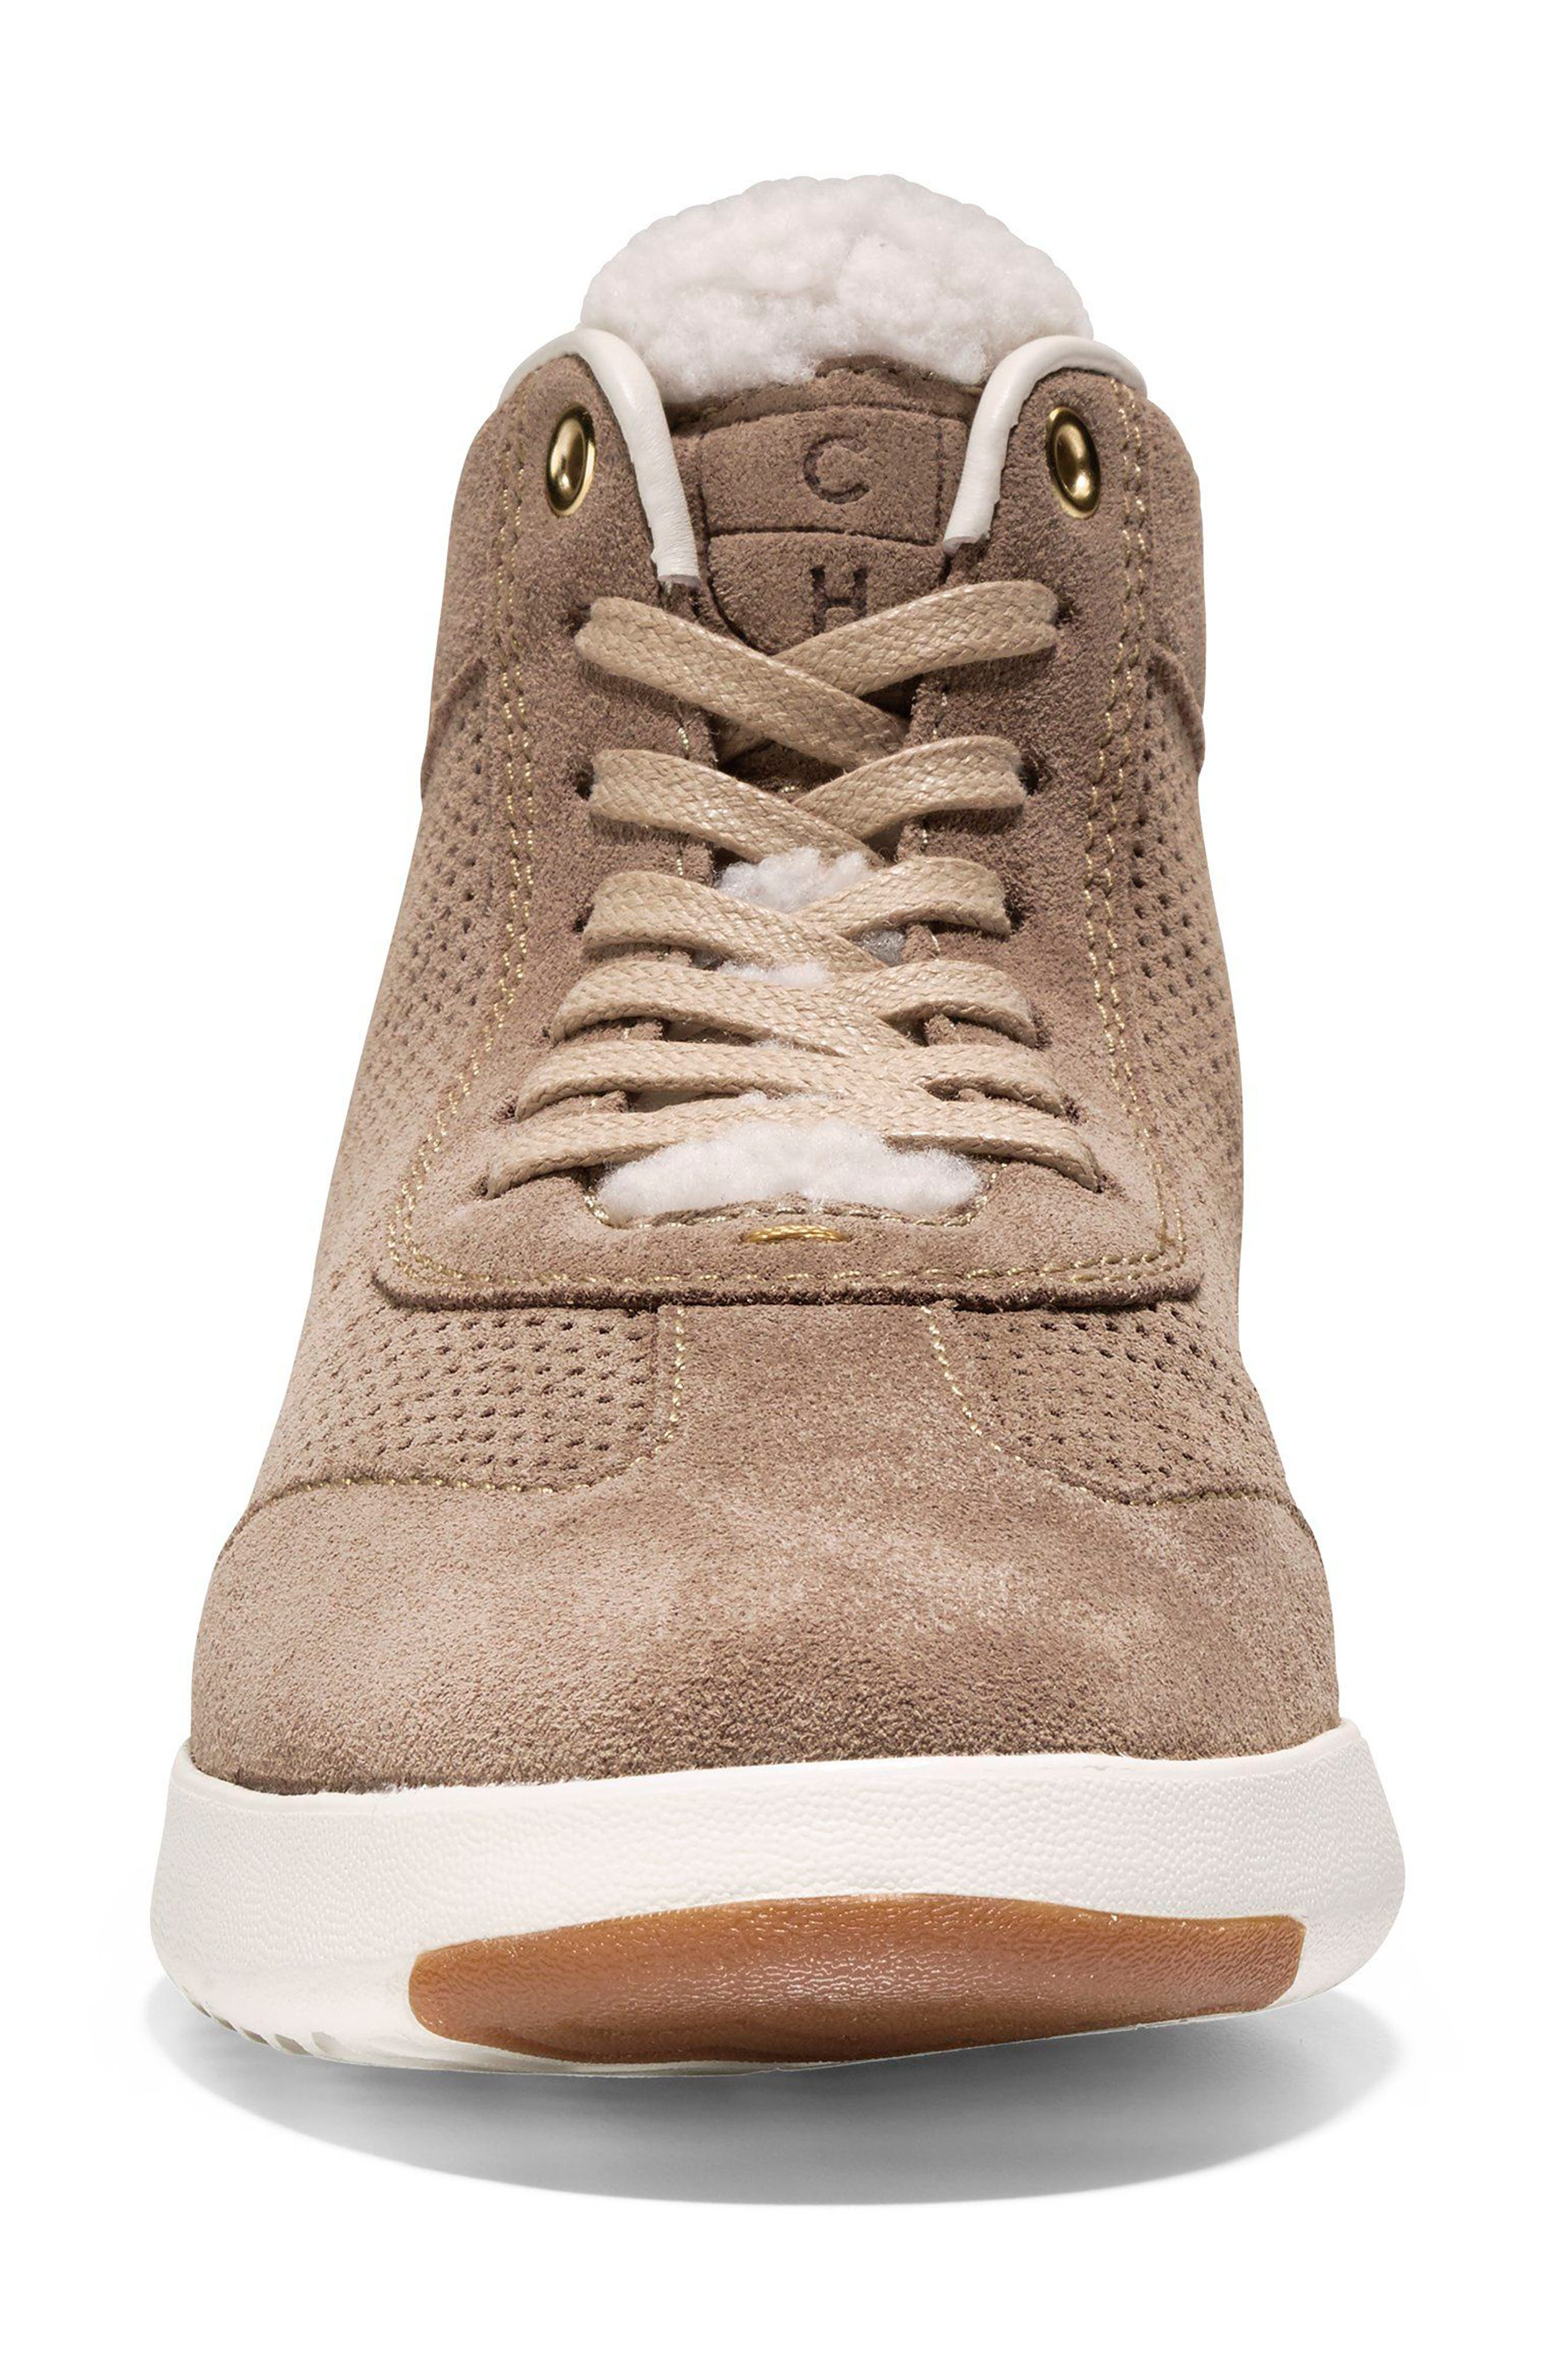 GrandPro High Top Sneaker,                             Alternate thumbnail 4, color,                             Warm Sand Suede